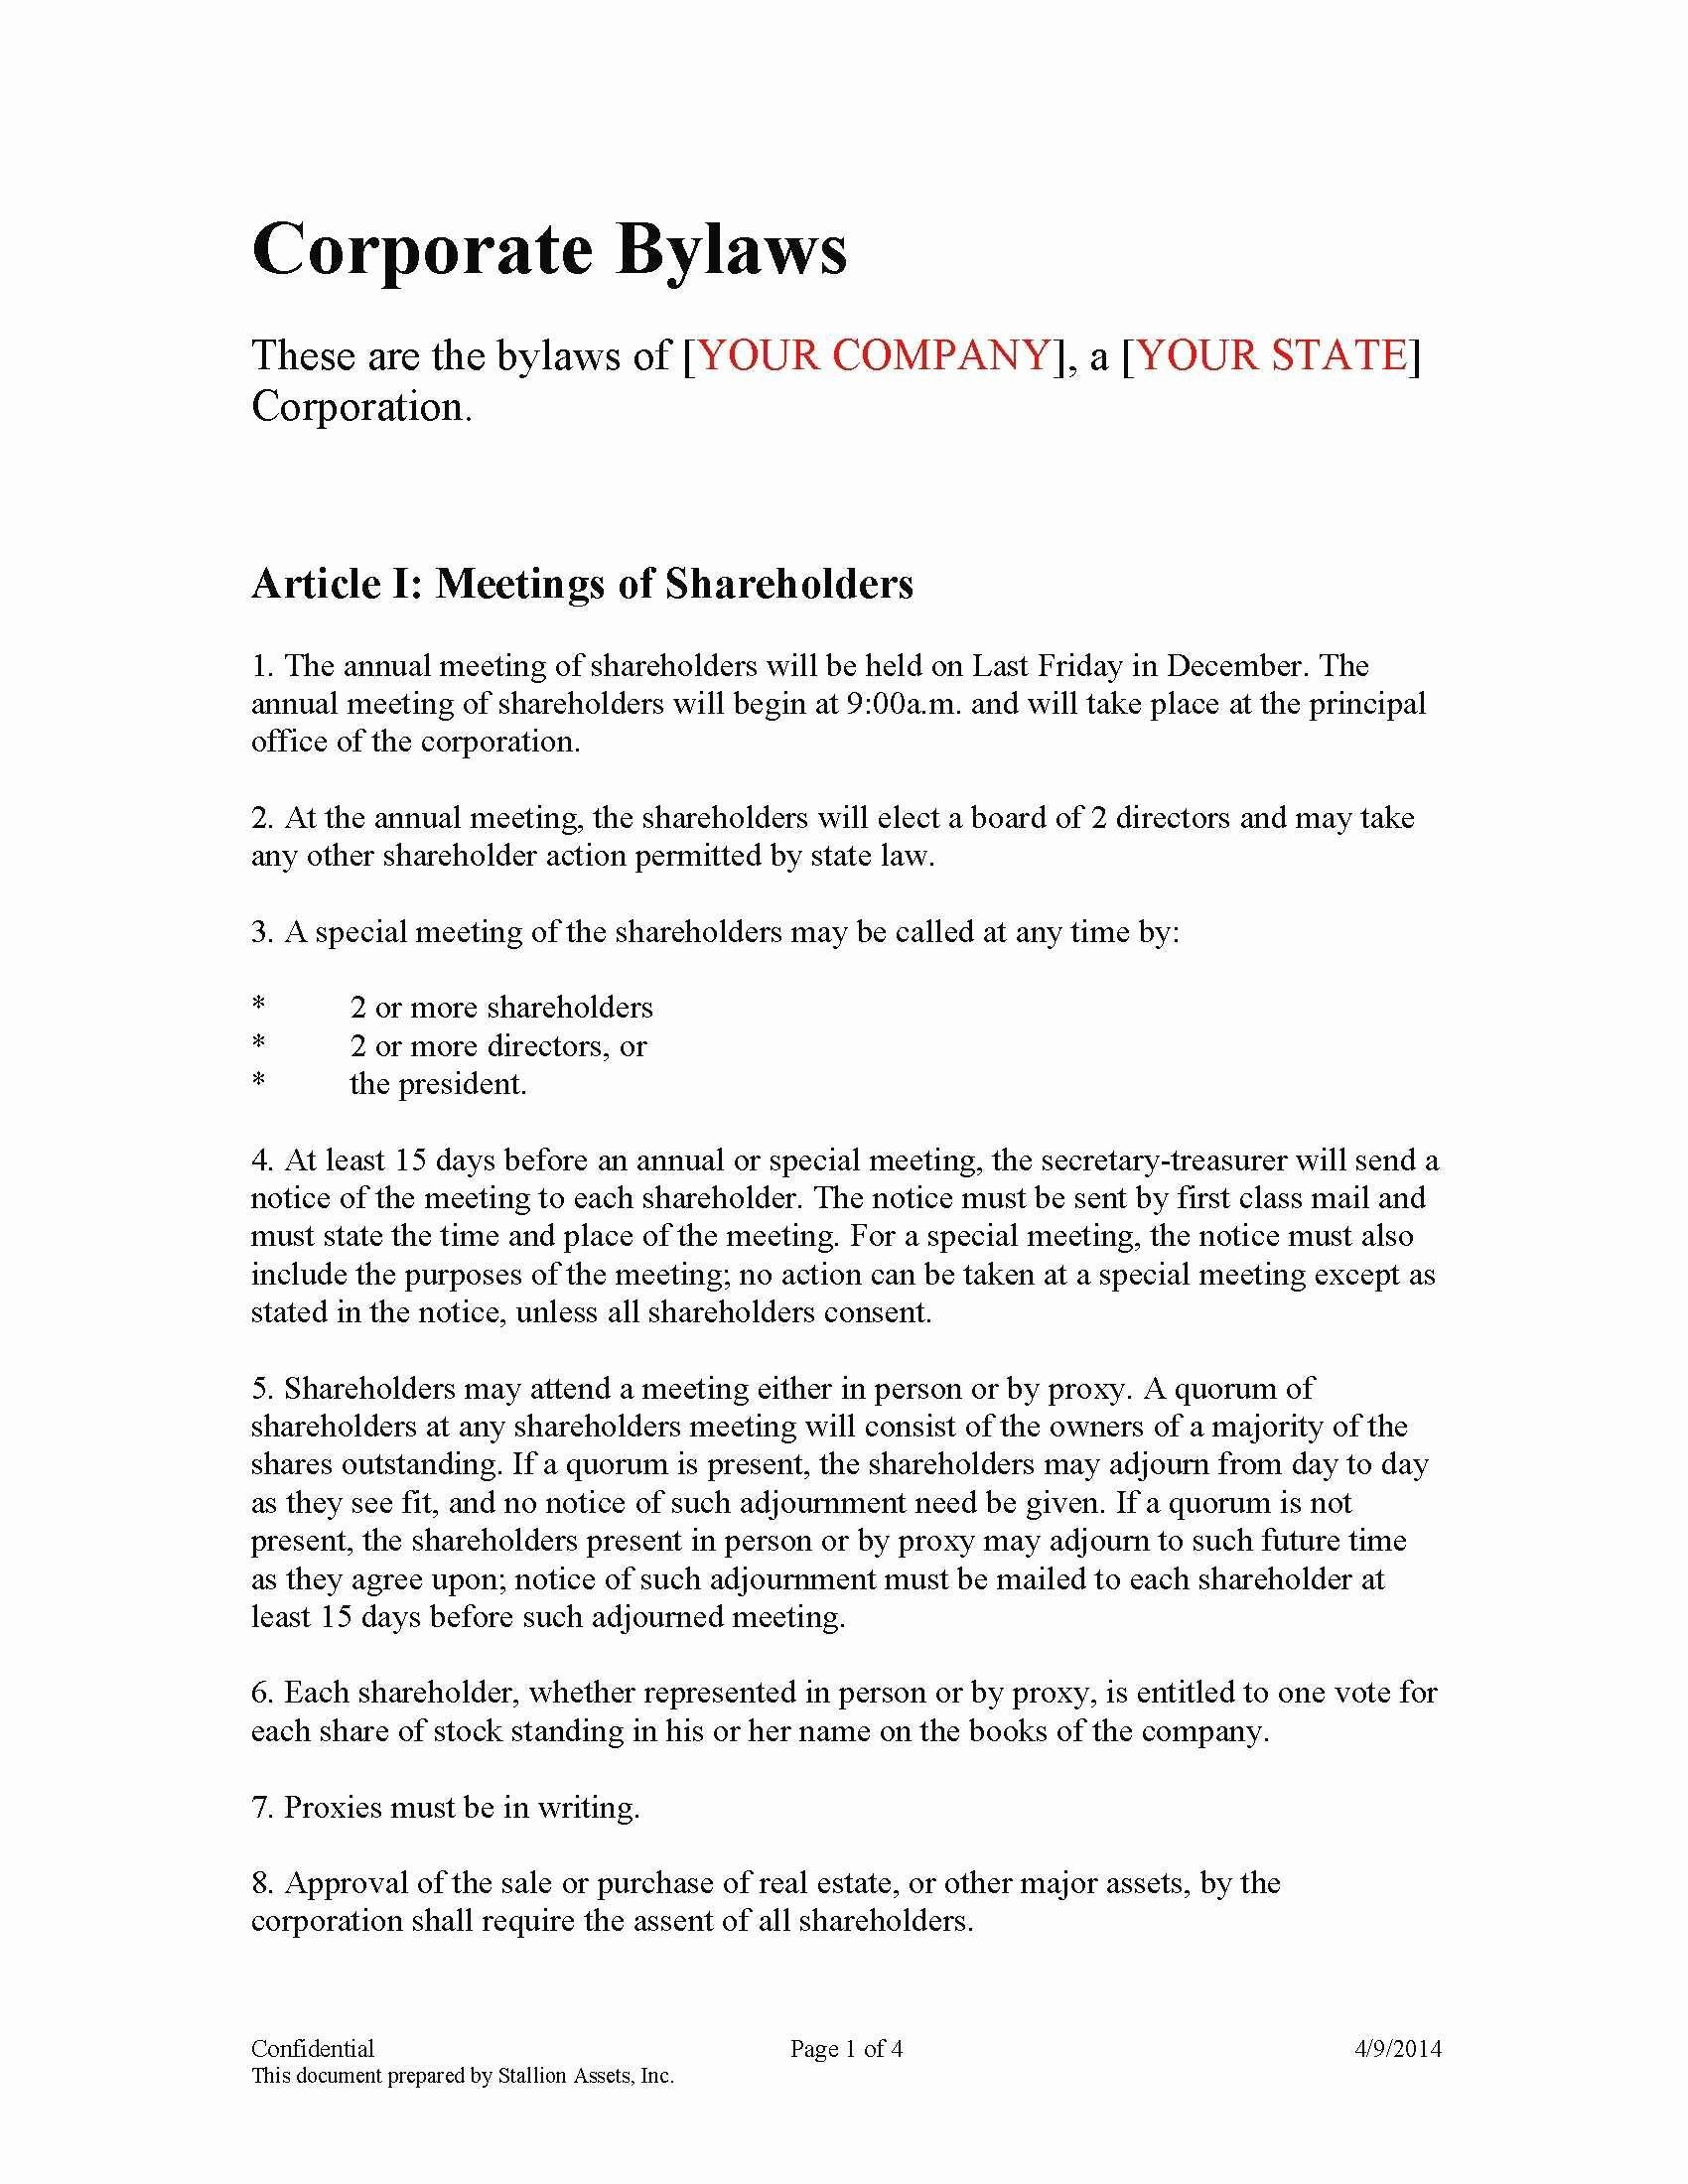 Corporate bylaws Template Pdf New Inspirational Corporate bylaws Sample Pdf